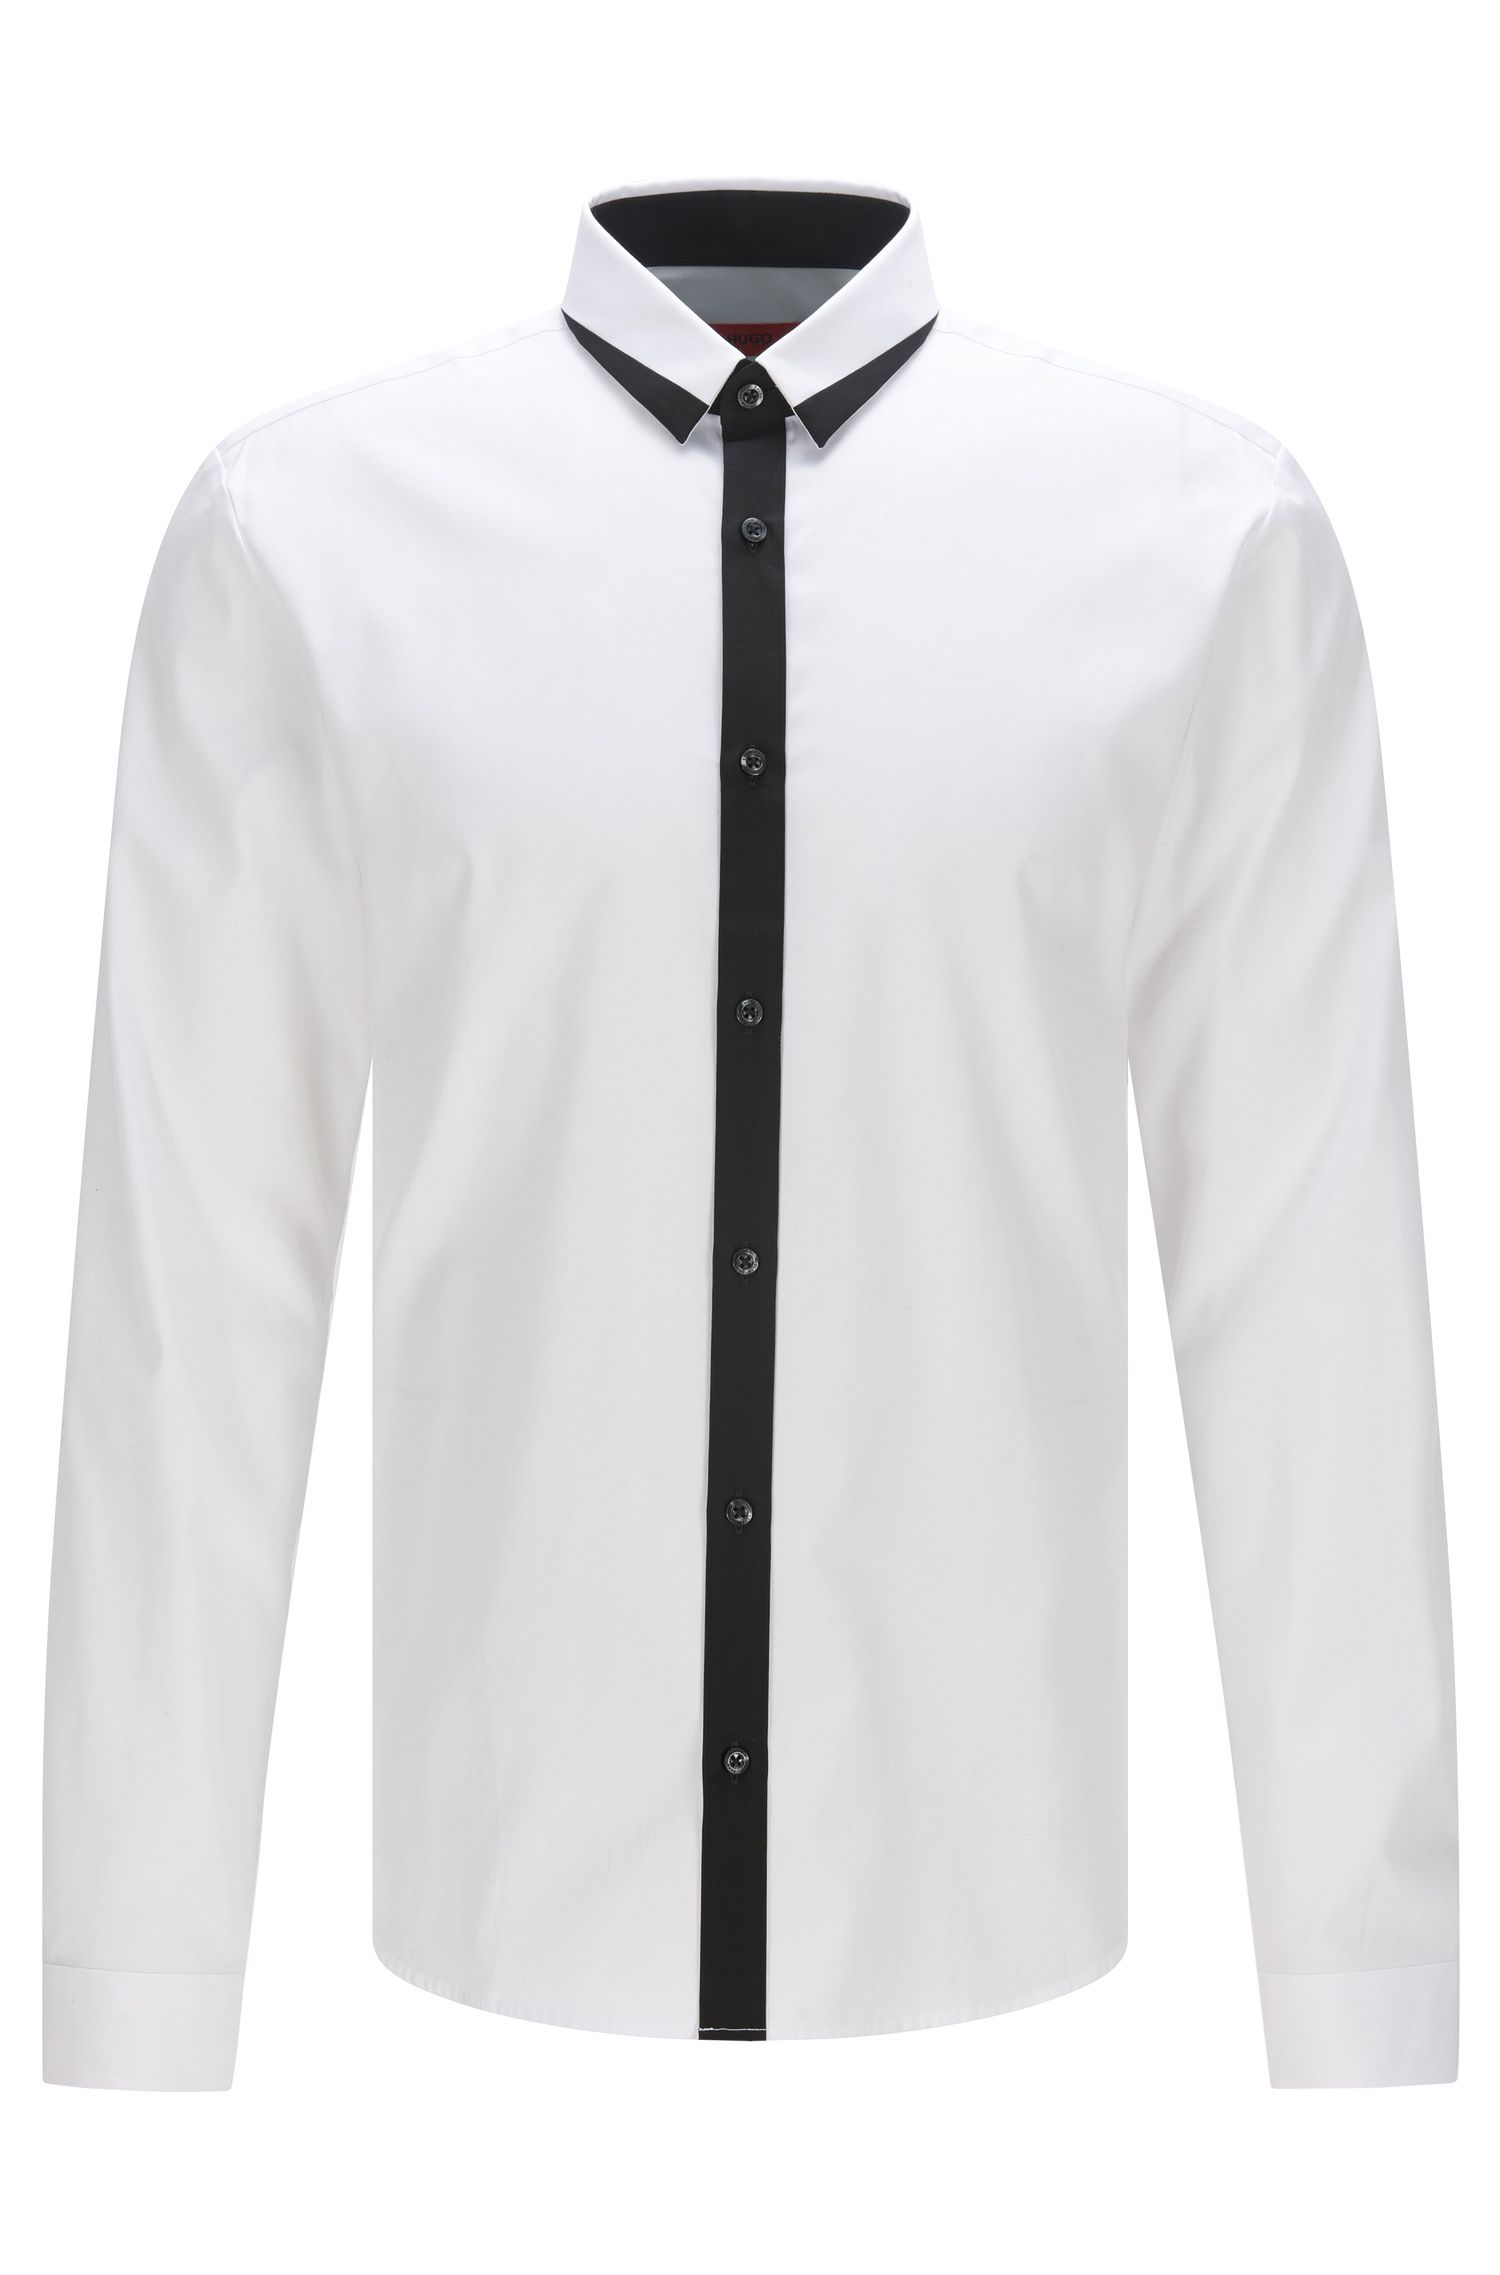 'Egberto' | Extra-Slim Fit, Colorblock Trim Cotton Button Down Shirt